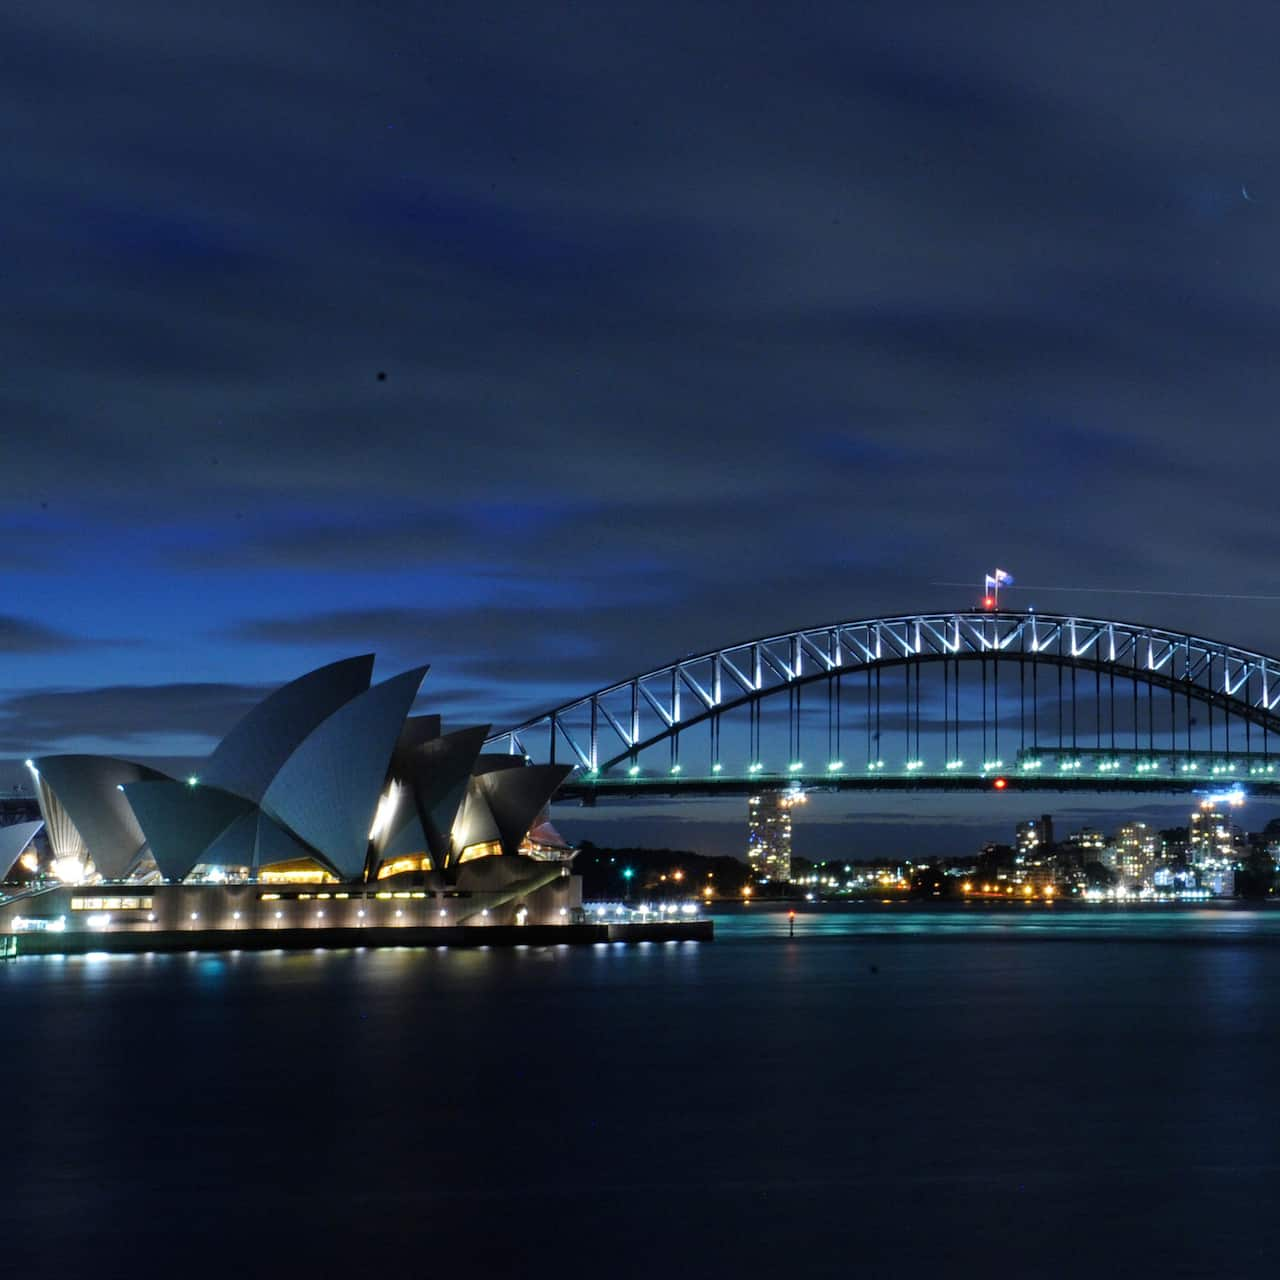 The Sydney Opera House and the Sydney Harbour Bridge at night